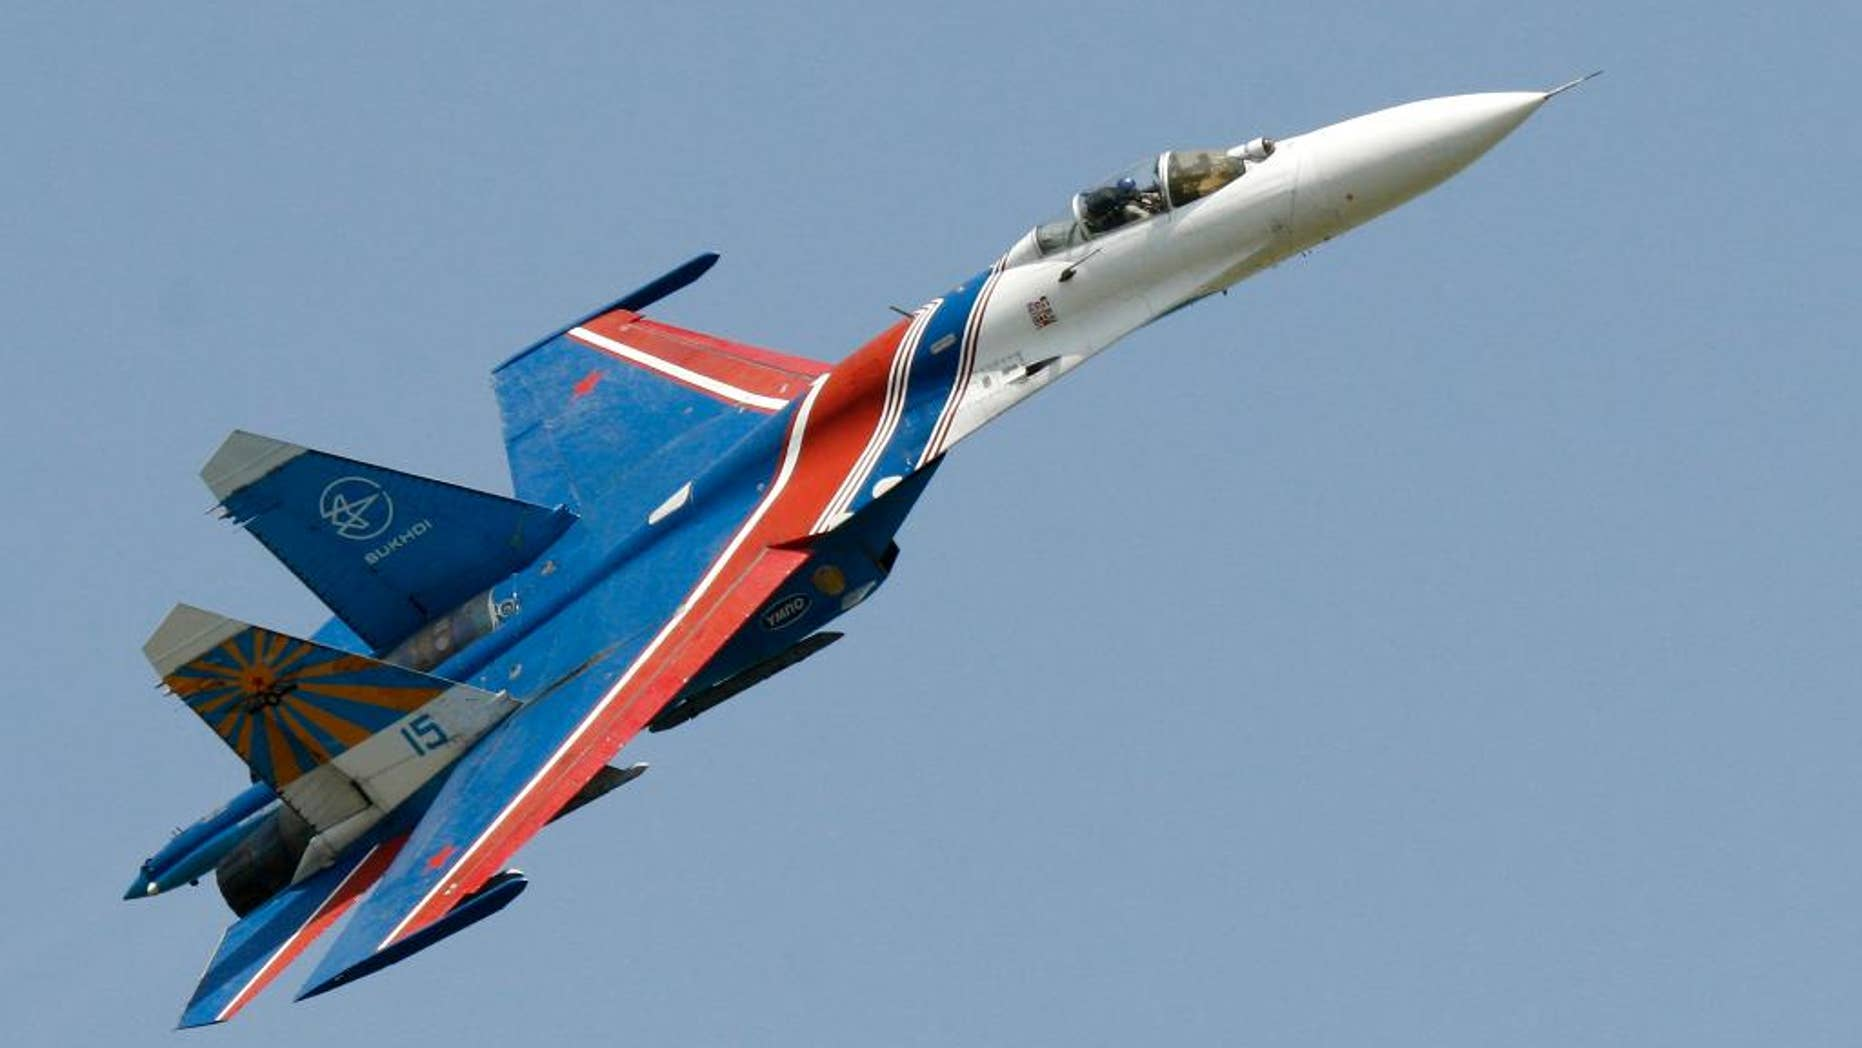 FILE- In this Saturday, May 26, 2007 file photo, a Sukhoi Su-27 fighter jet of the Russian air force elite aerobatic team Russkiye Vityazi (Russian Knights) makes a low pass during an air show in Rostov-on-Don, Russia. A pilot of the Russian air force's elite aerobatic squadron died Thursday, June 9, 2016 when his fighter jet crashed near Moscow. The Russian Defense Ministry said the Su-27 fighter jet went down while returning from a training mission. It said, according to preliminary information, the crash had been caused by a technical malfunction, but wouldn't elaborate pending an official probe. 3 (AP Photo/Sergei Venyavsky, file)